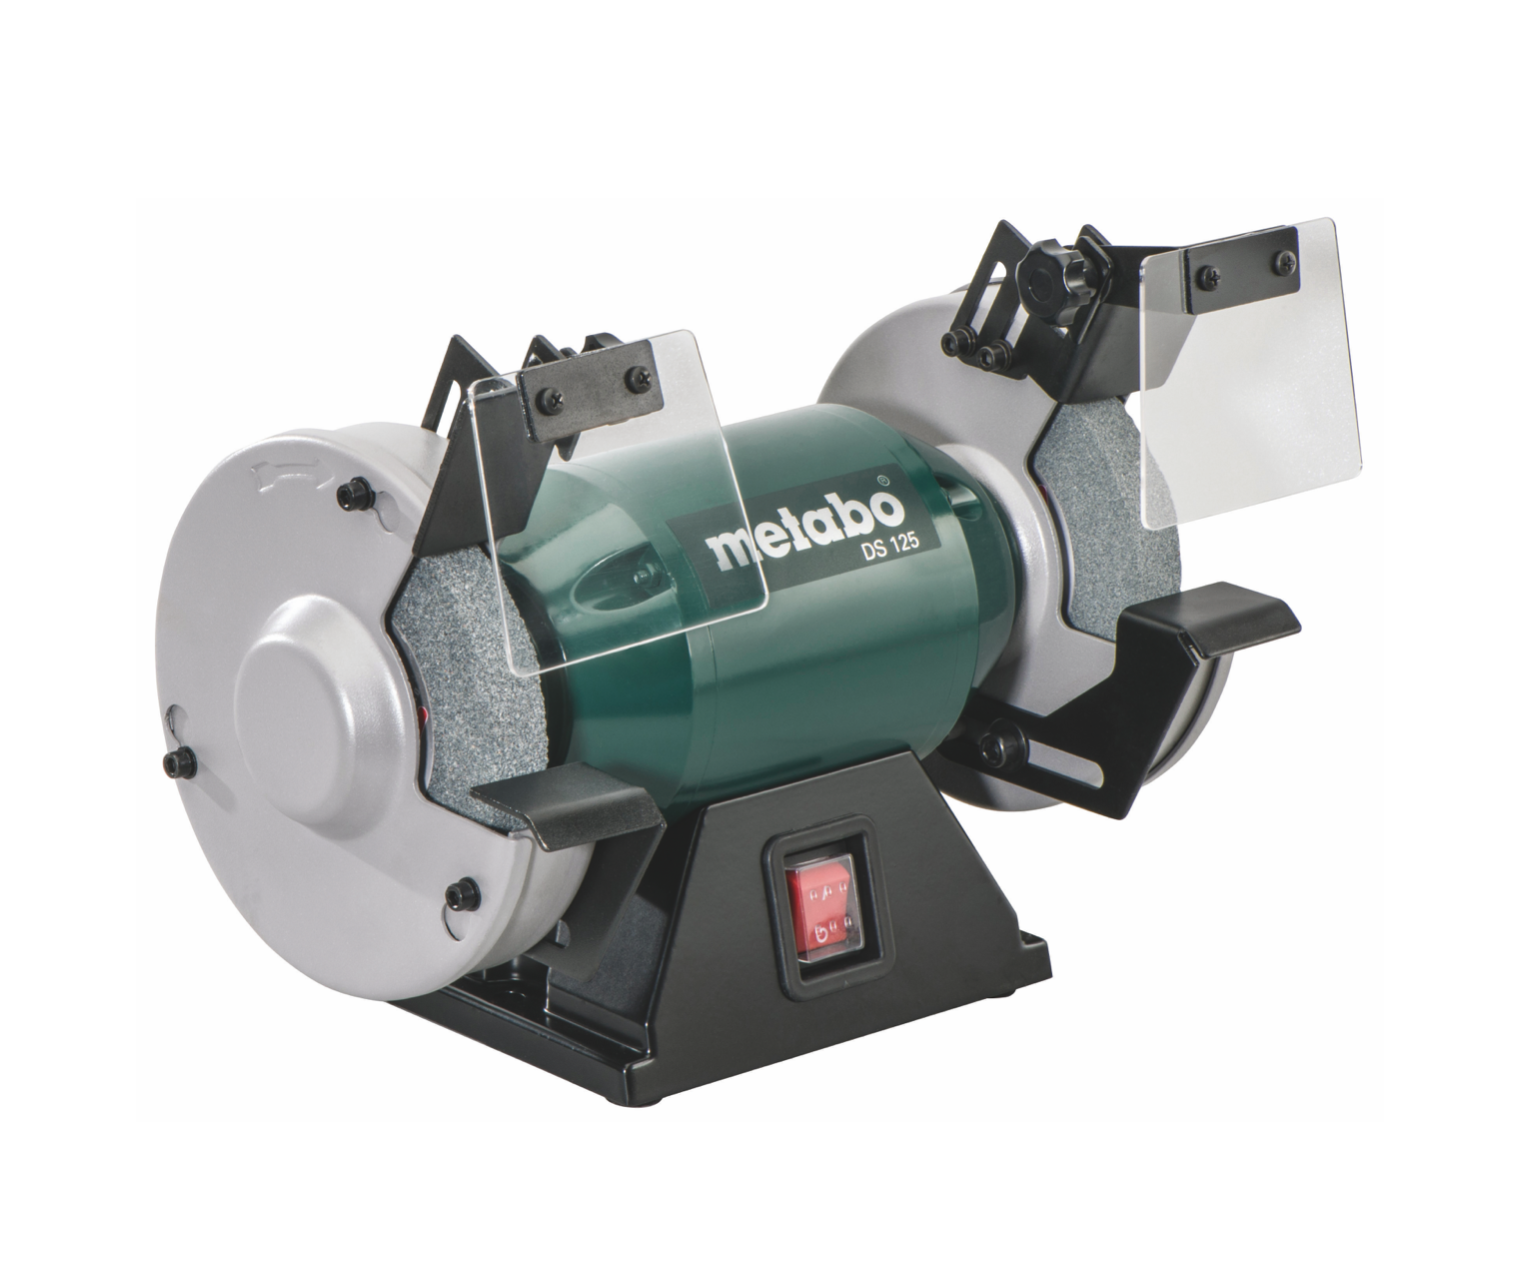 METABO Bænksliber DS 125